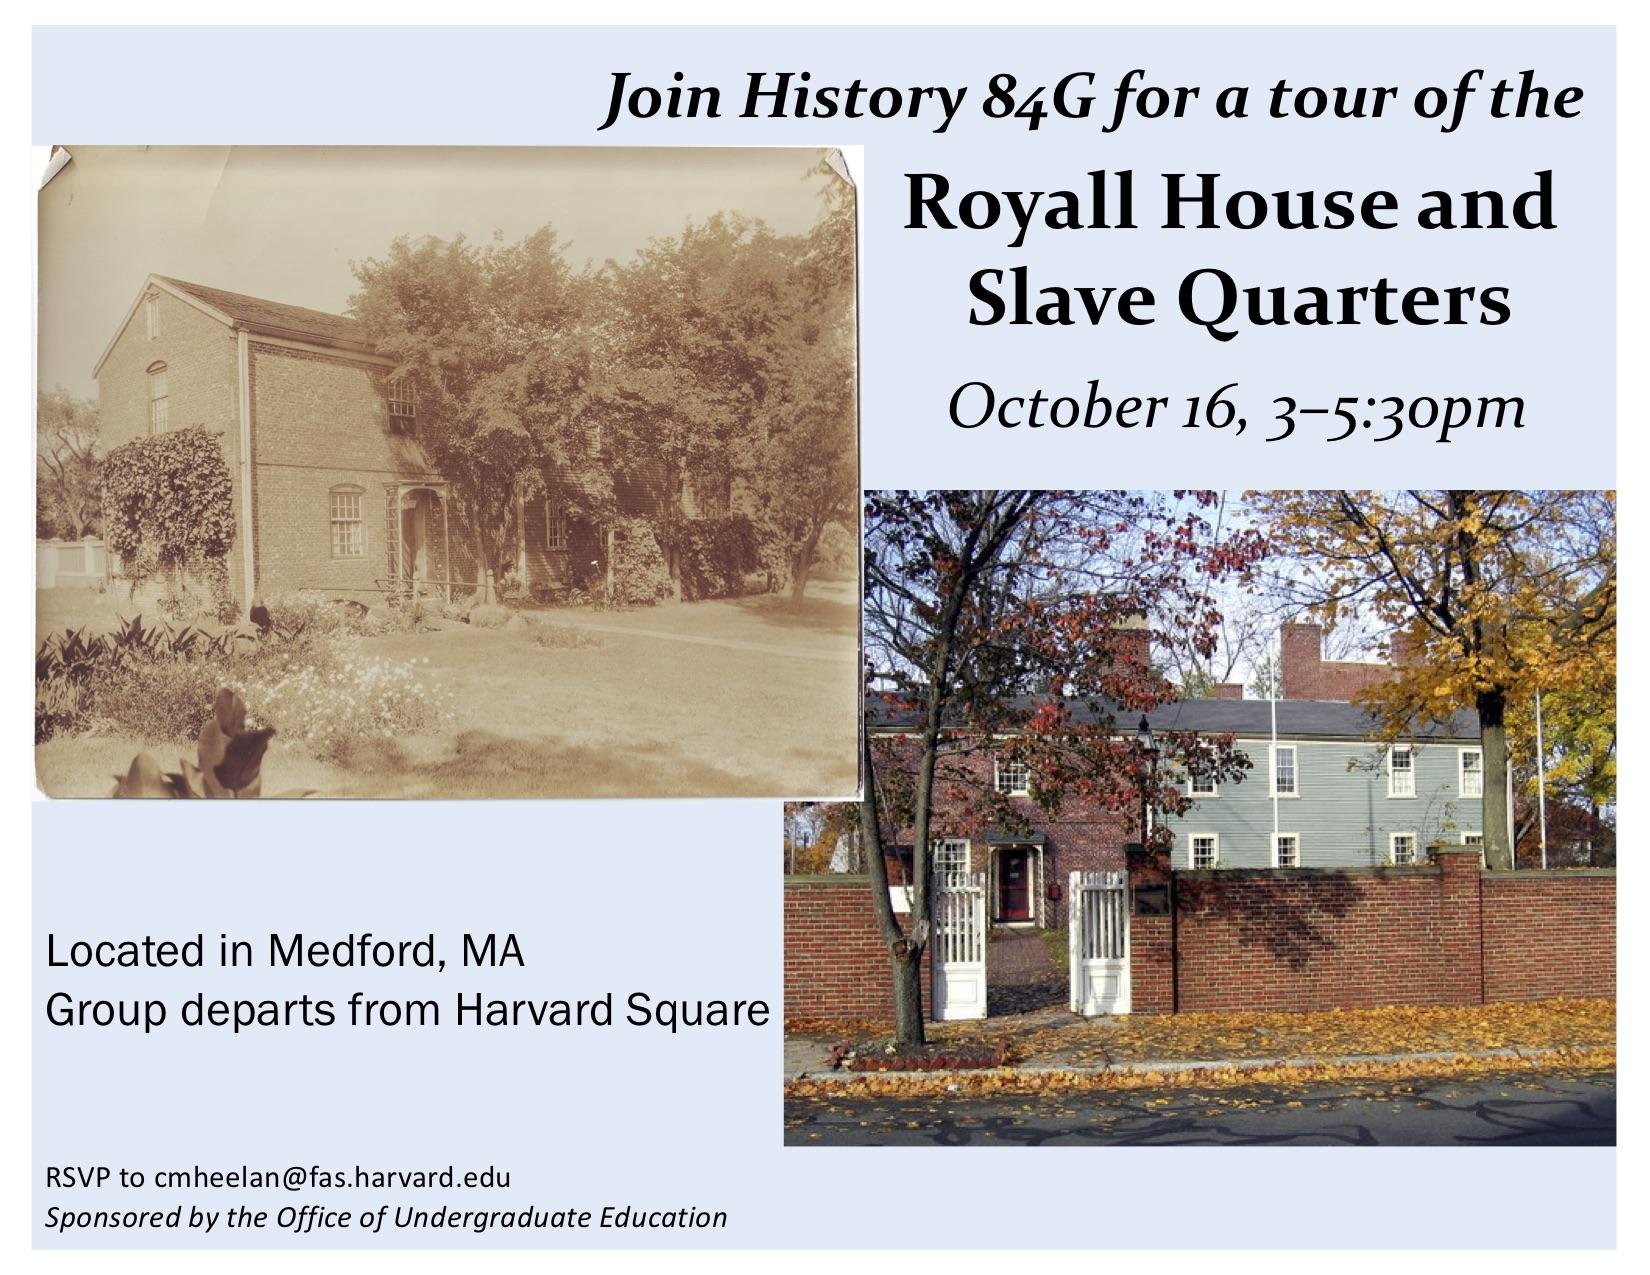 Outing to Royall House and Slave Quarters